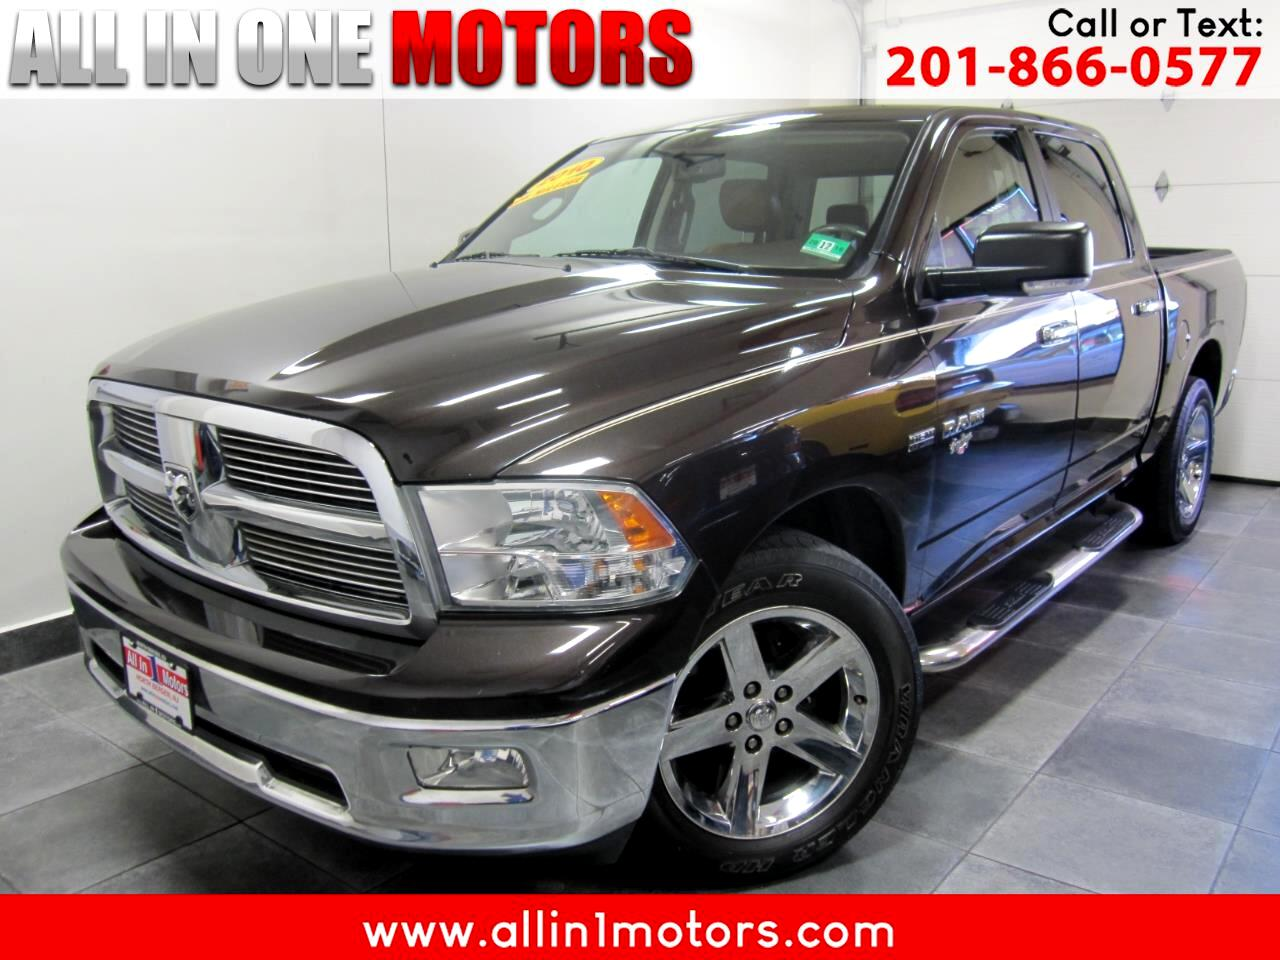 2010 Dodge Ram 1500 4WD CREW CAB BIG HORN *RAWLINGS EDITION*